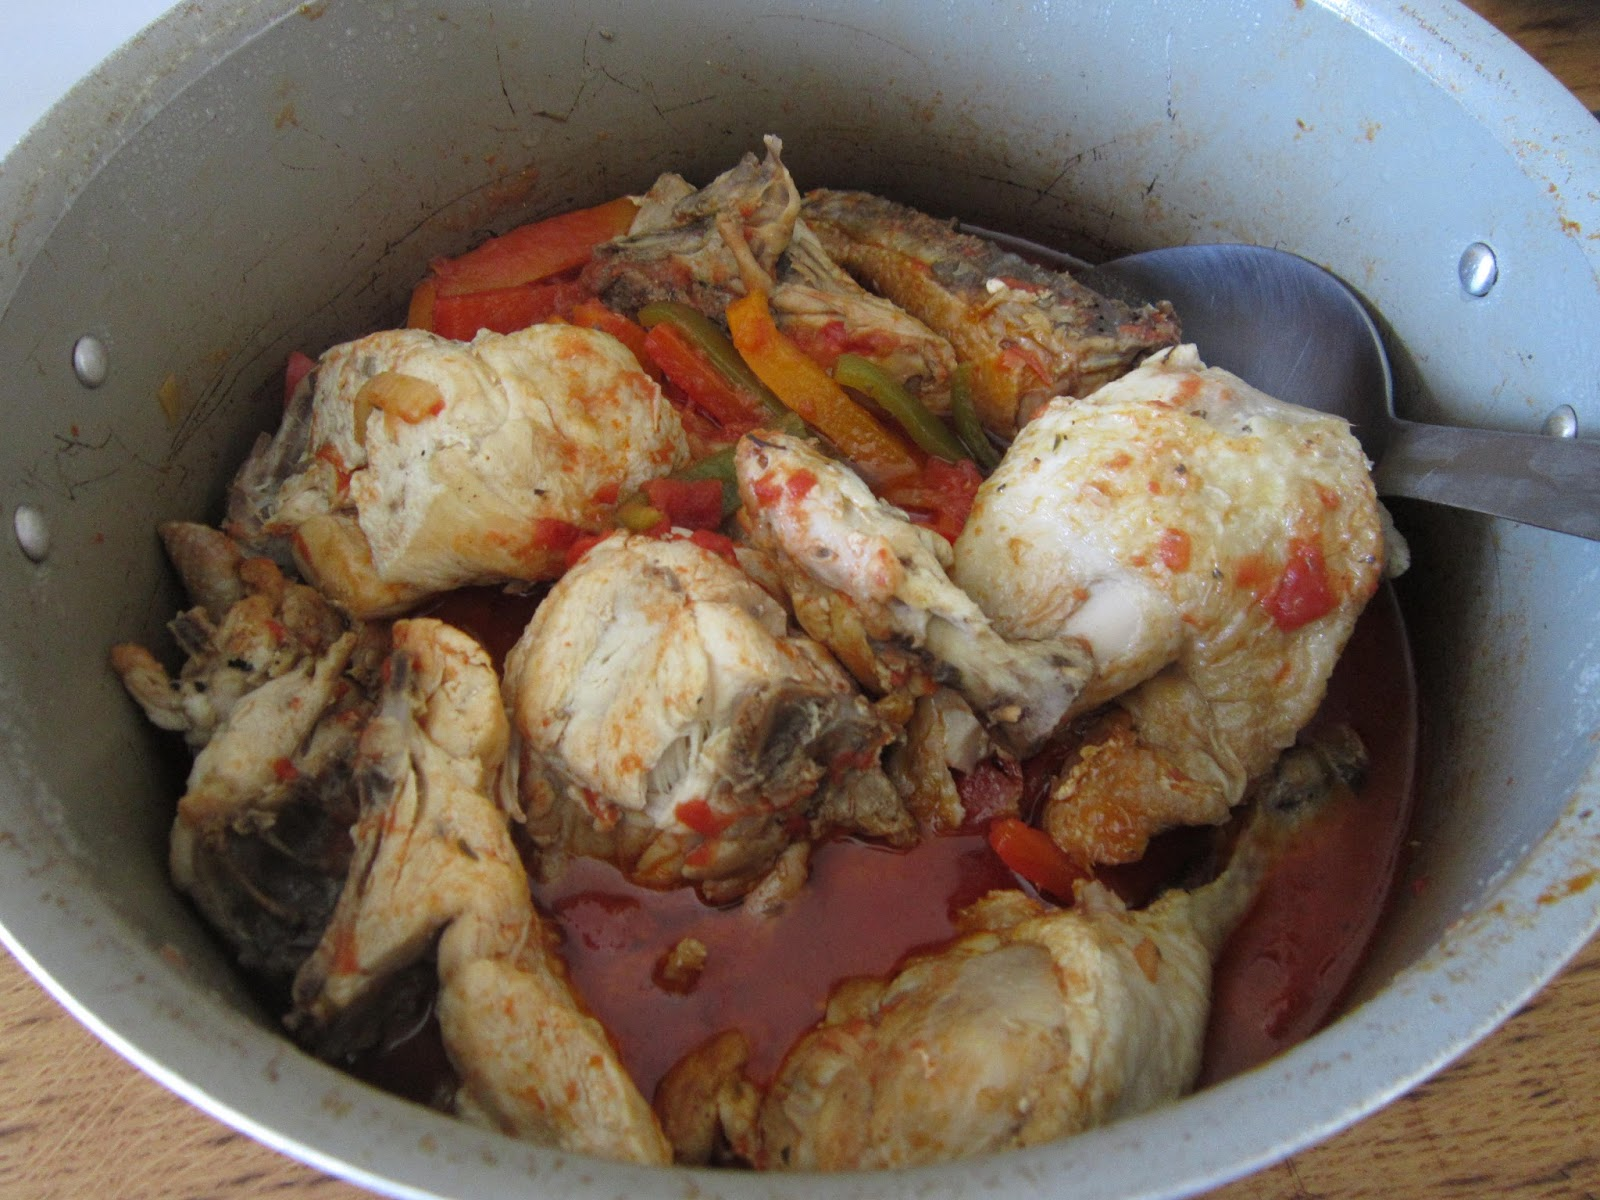 Dinner at Six Thirty: Poulet / Chicken Basquaise